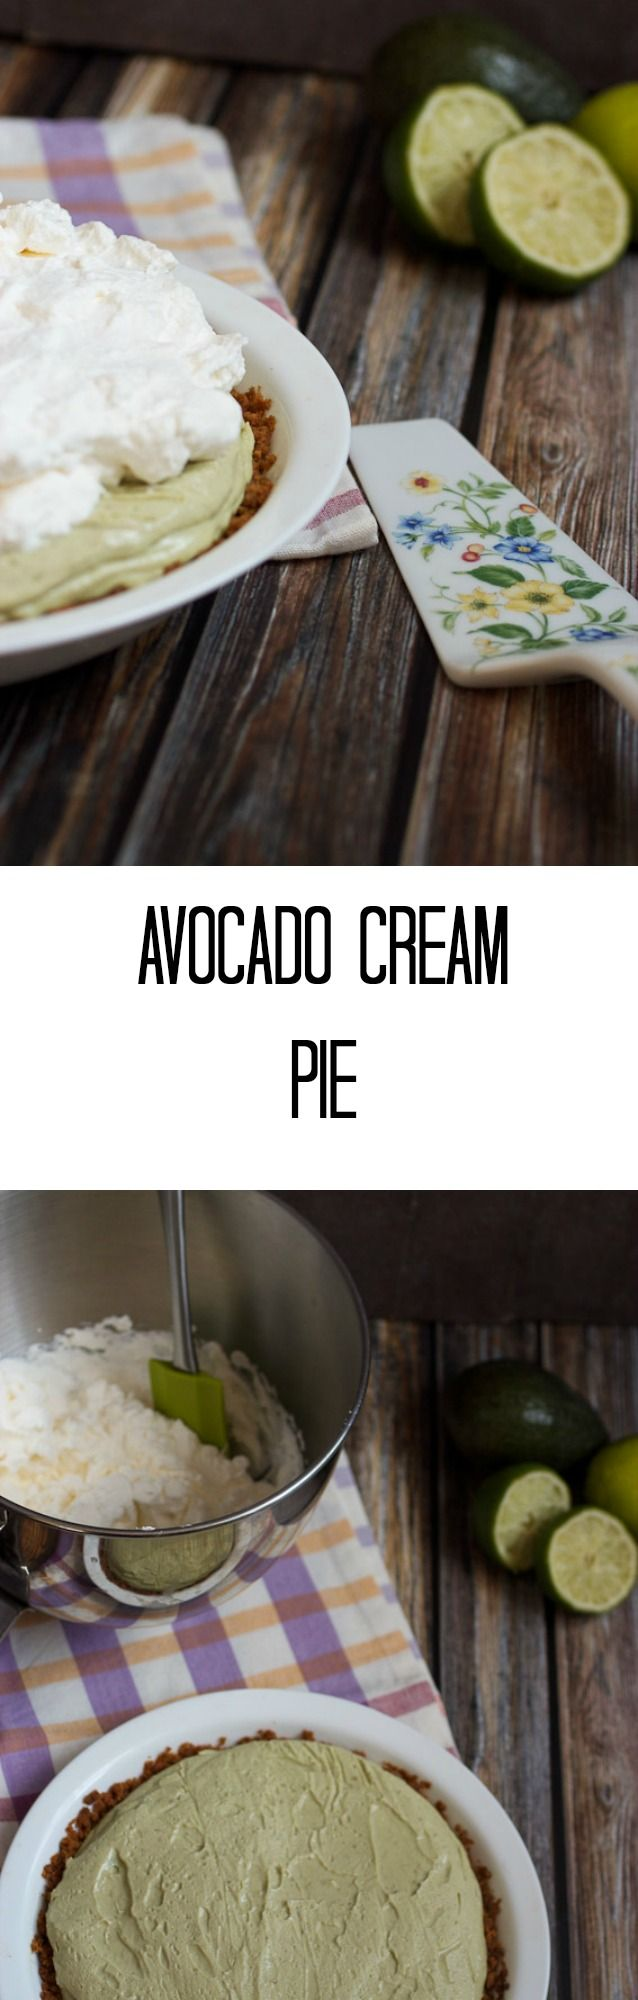 ...Avocado Cream Pie - Review of First Prize Pies, The Girl in the Little Red Kitchen...